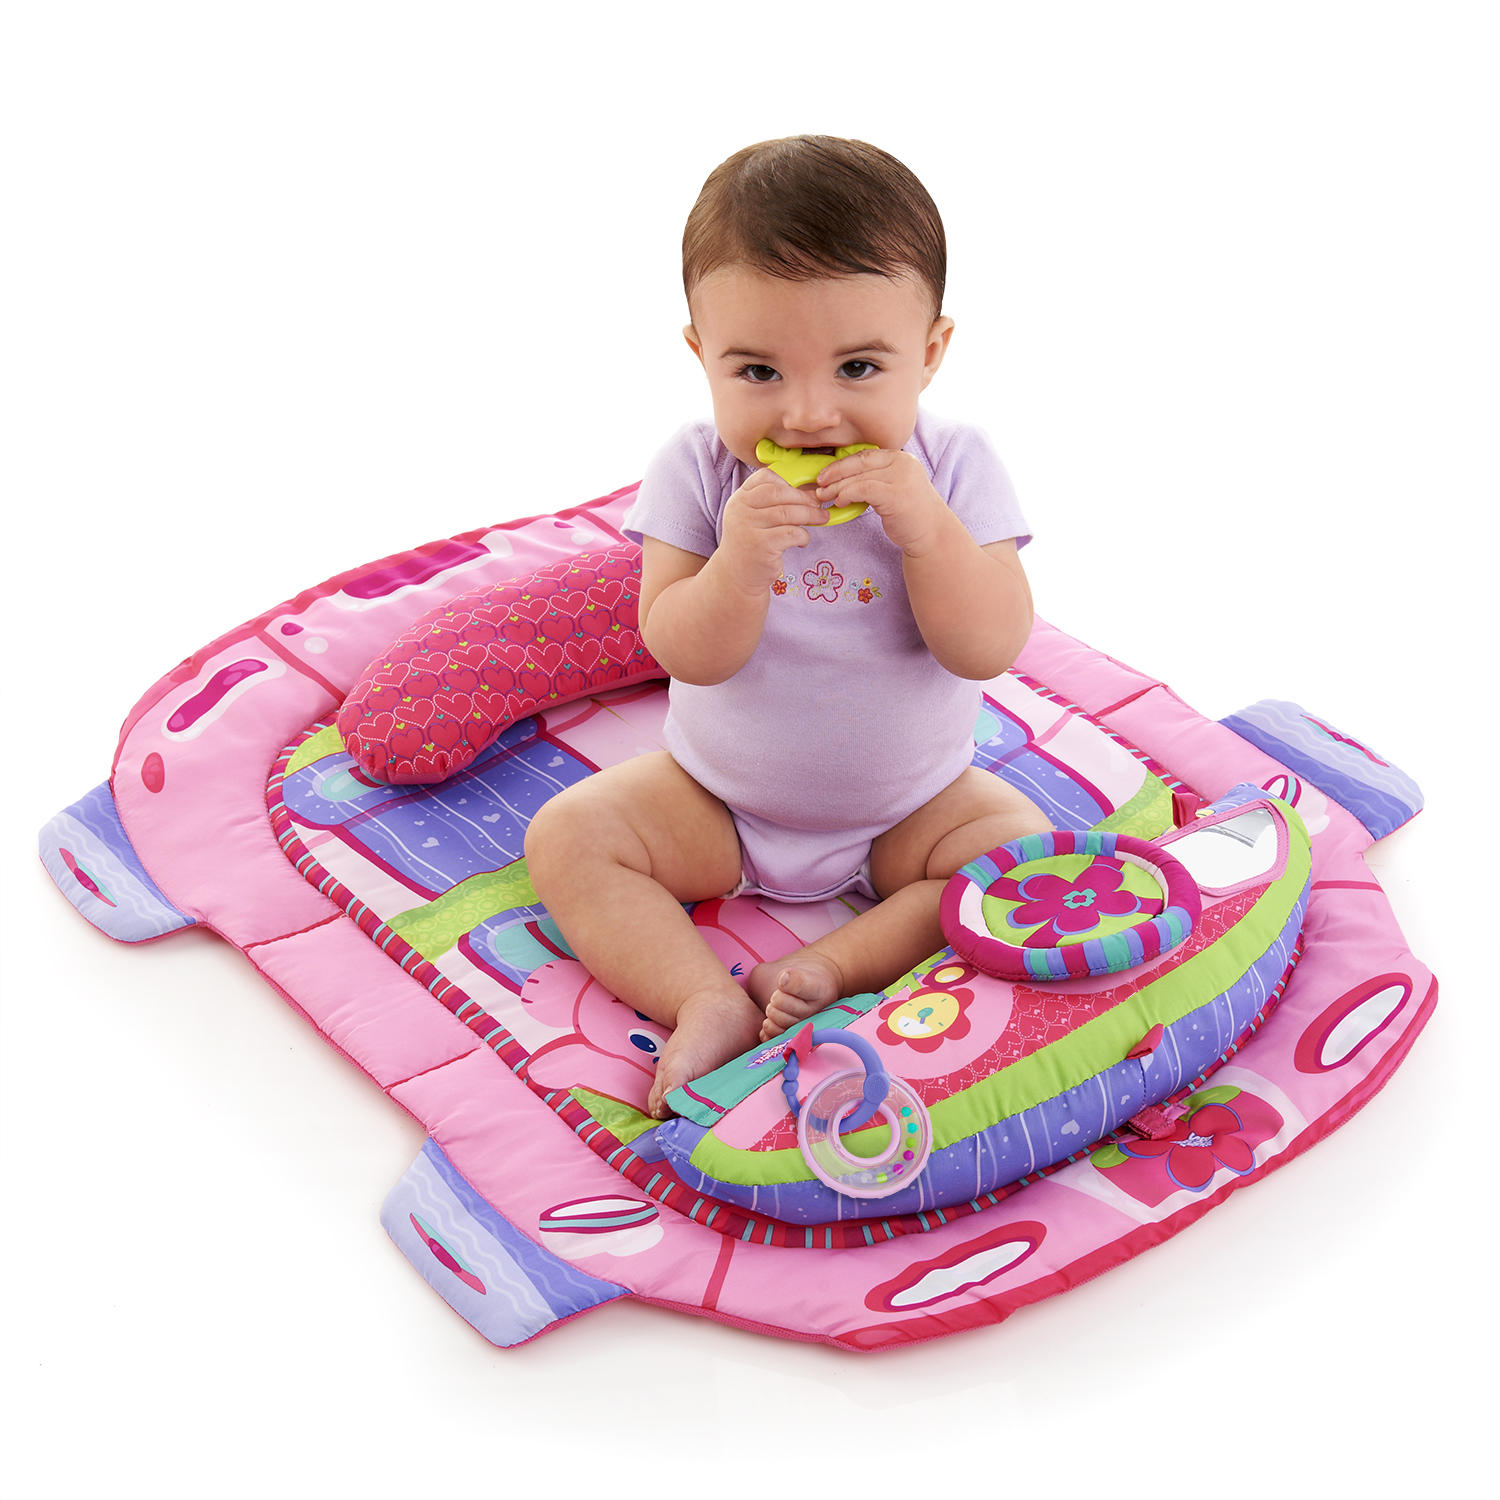 Tummy Cruiser™ Prop & Play Mat